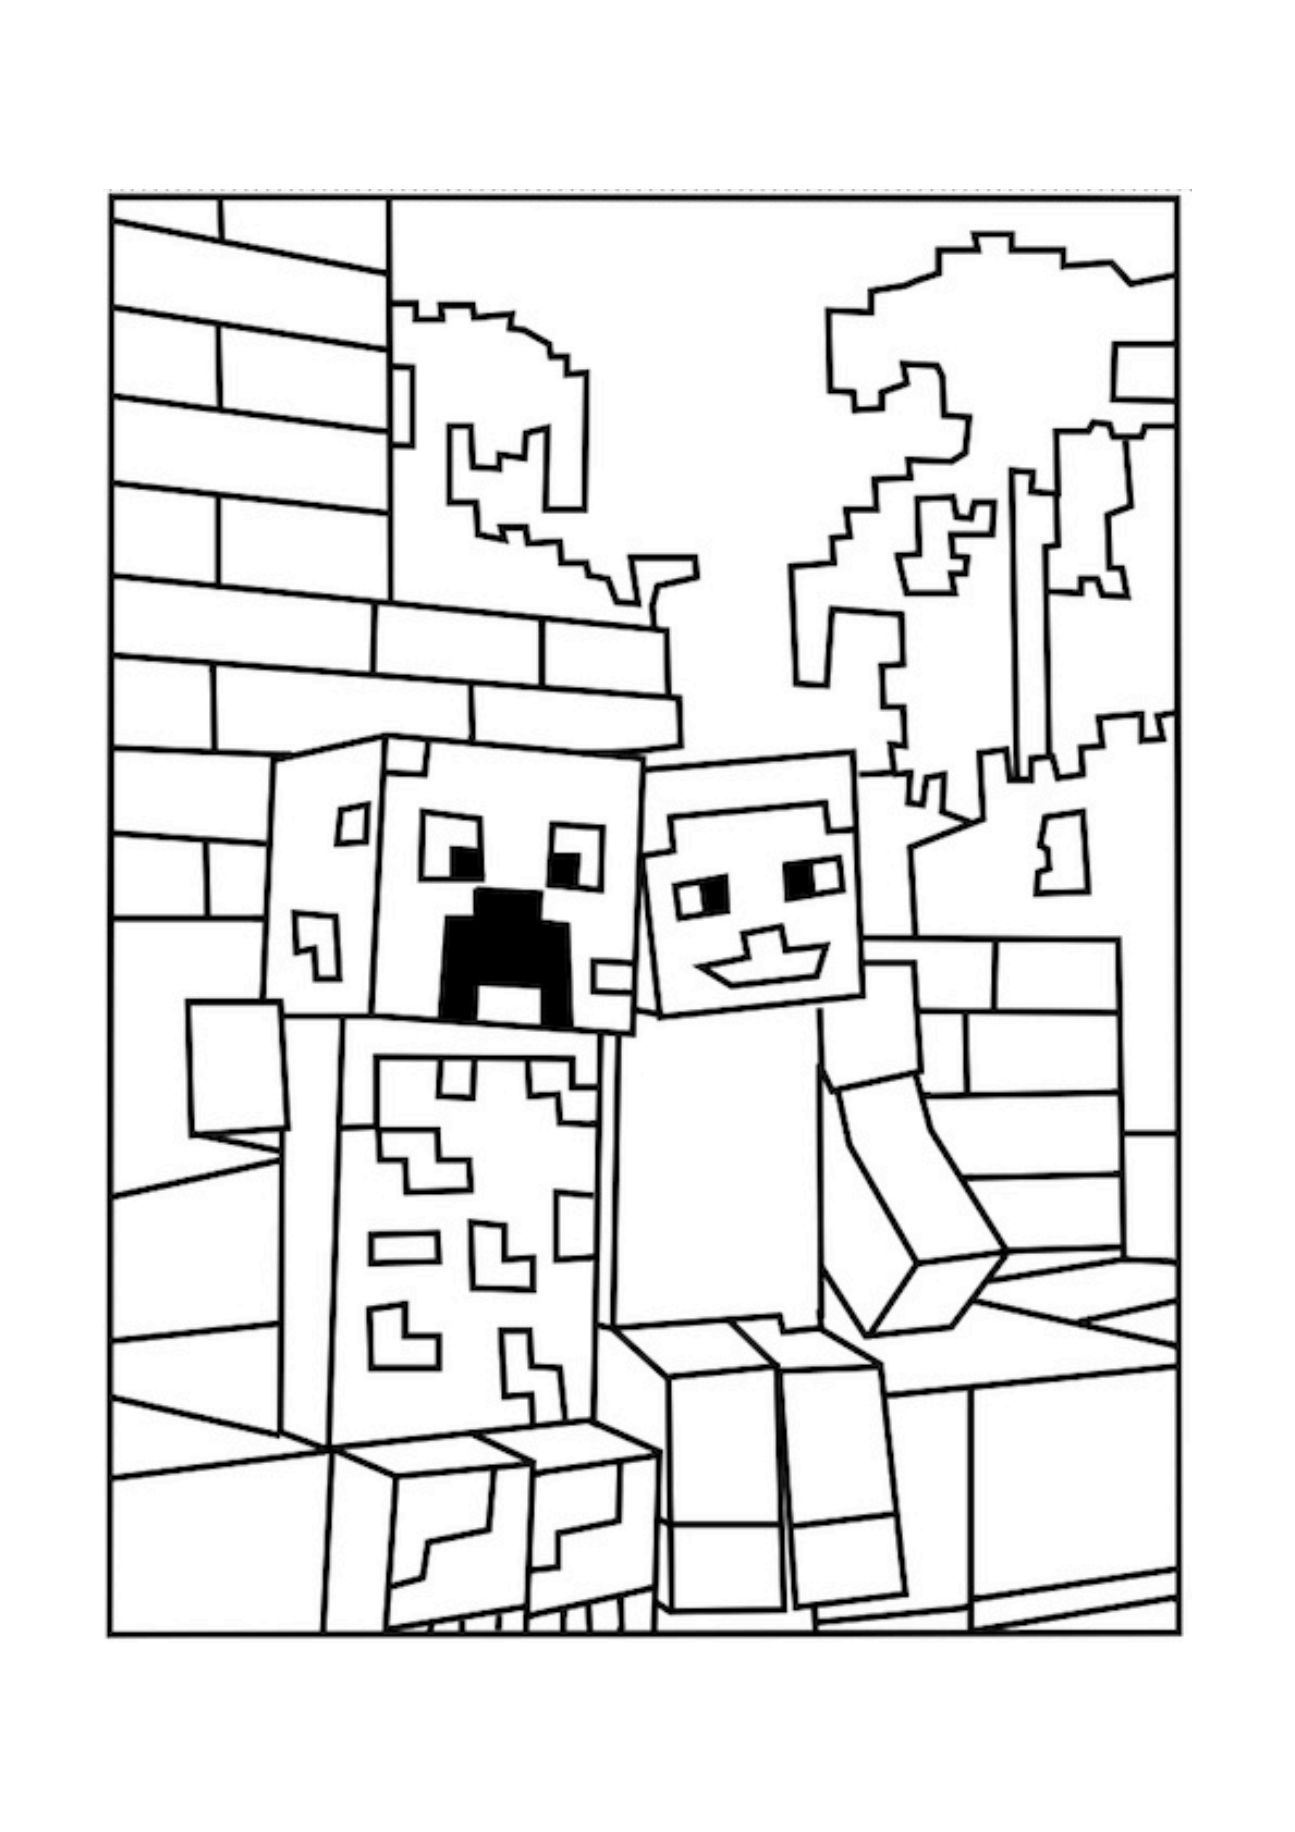 Best Minecraft Creeper Coloring Pages - Free, printable Minecraft ...